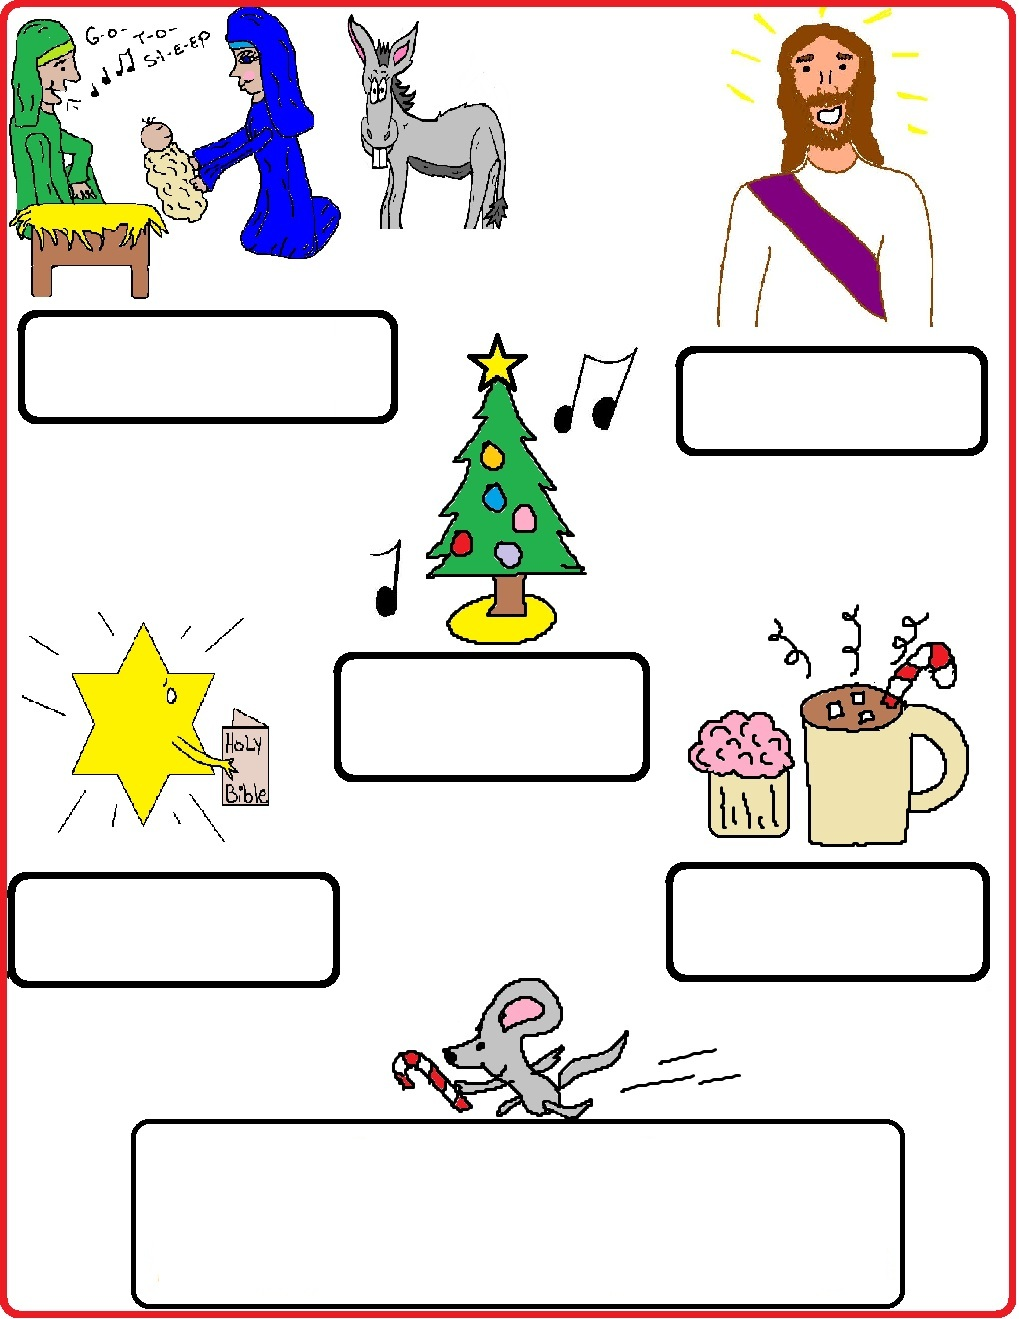 It's just a graphic of Handy Printable Christmas Plays for Church